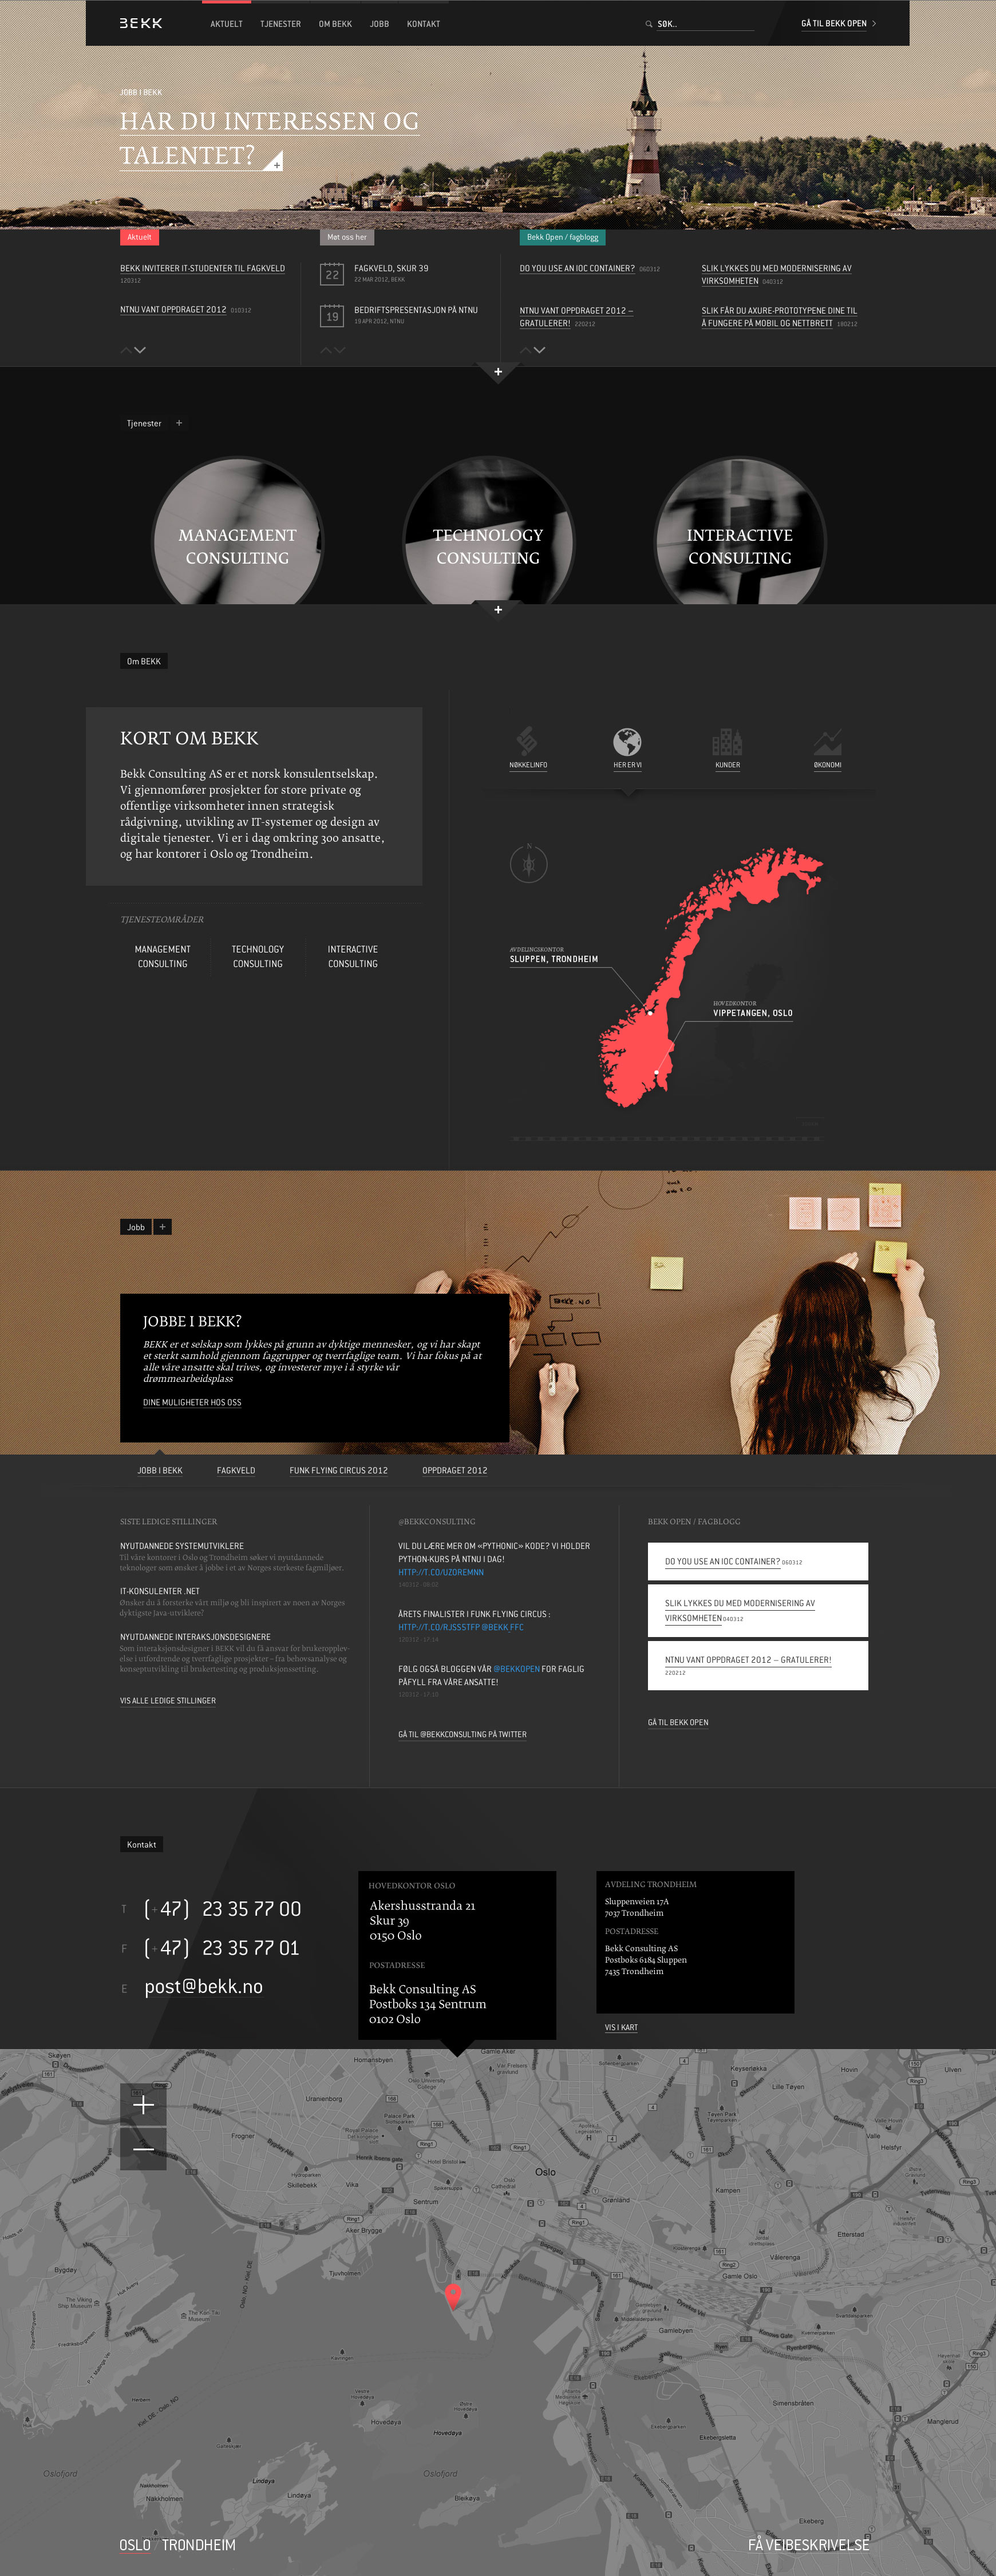 Bekk Consulting AS Website Screenshot